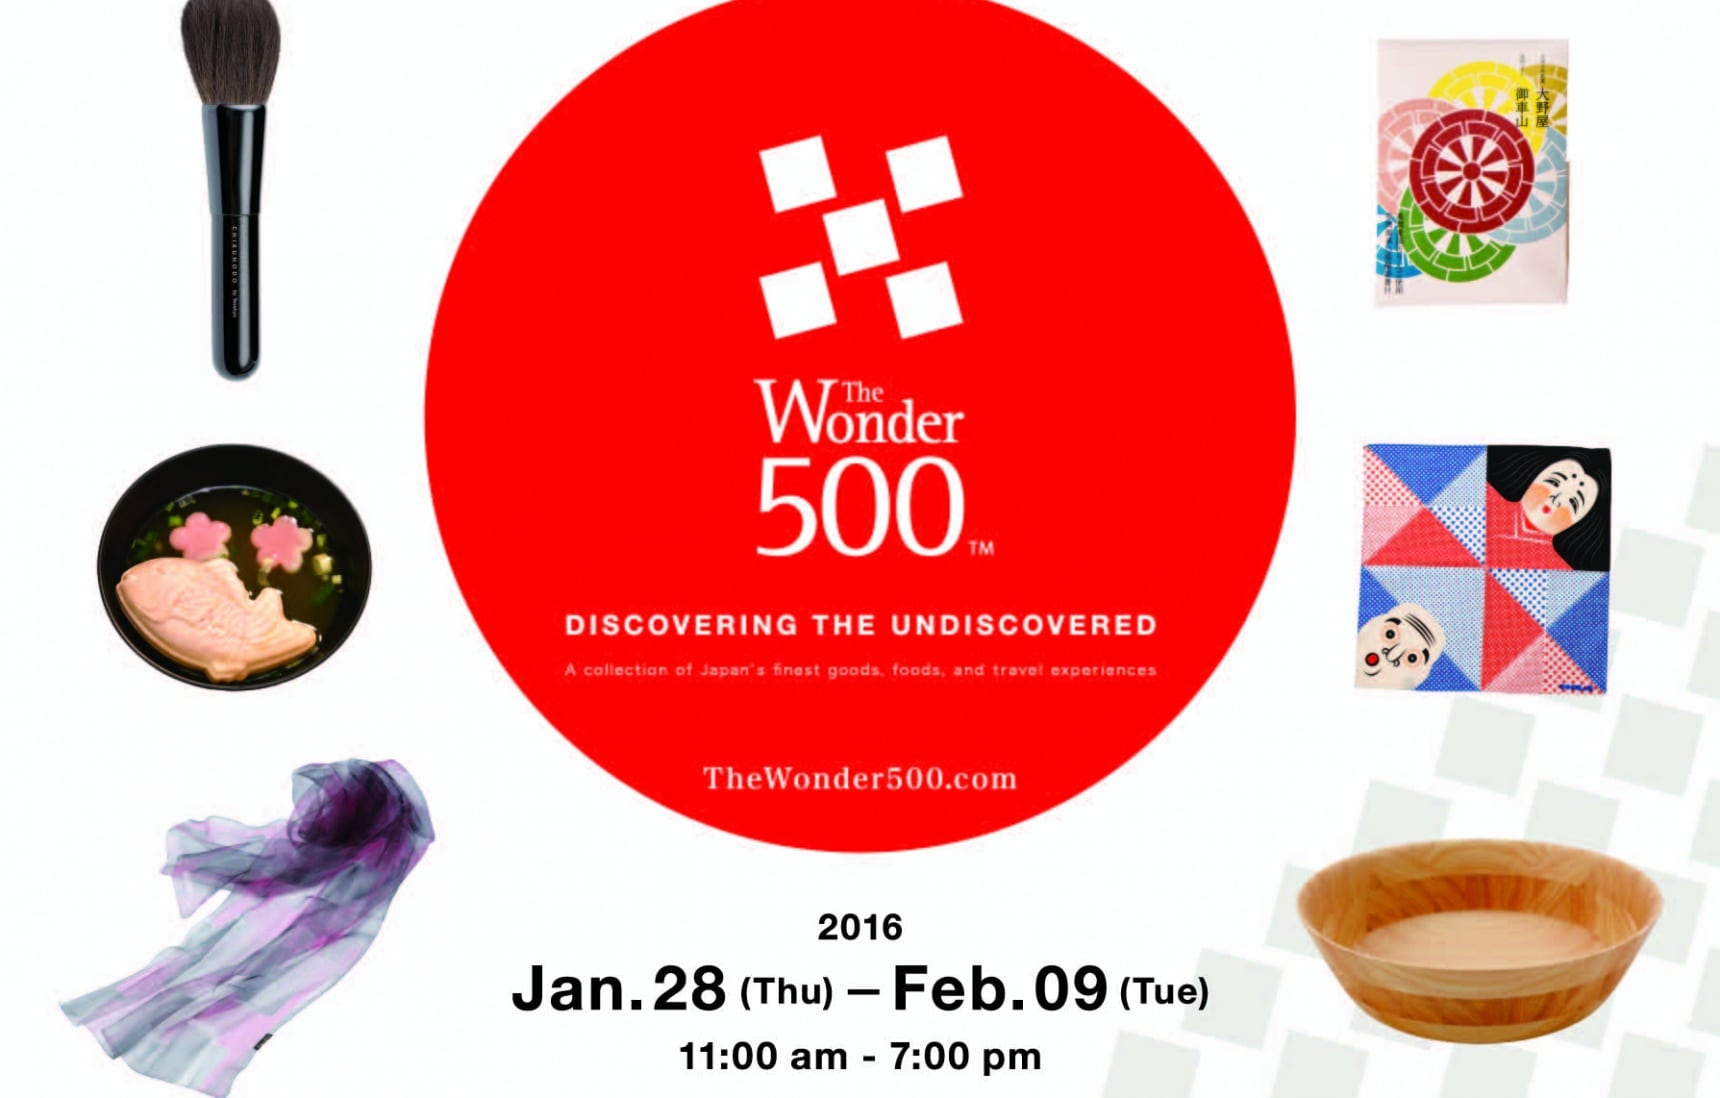 The Wonder 500™ Exhibition in New York